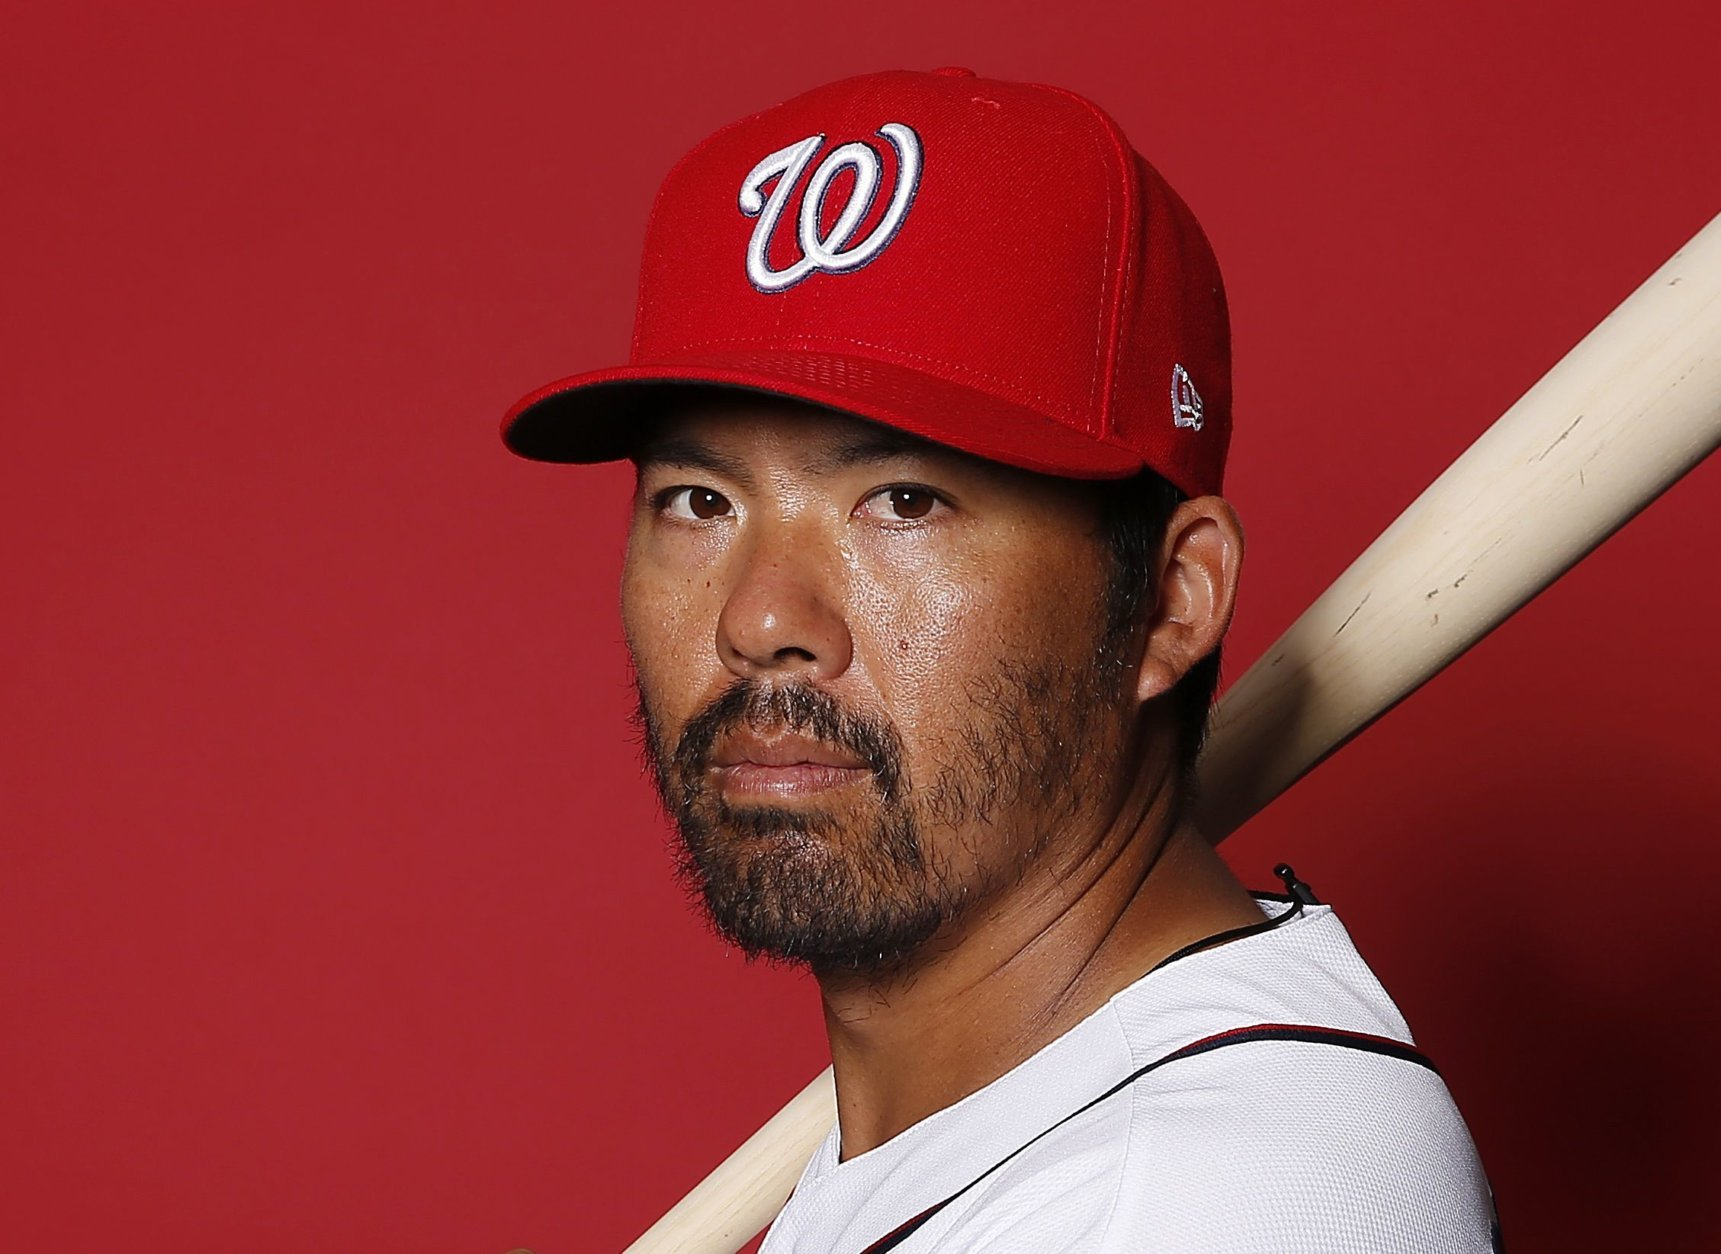 WEST PALM BEACH, FLORIDA - FEBRUARY 22:  Kurt Suzuki #28 of the Washington Nationals poses for a portrait on Photo Day at FITTEAM Ballpark of The Palm Beaches during on February 22, 2019 in West Palm Beach, Florida. (Photo by Michael Reaves/Getty Images)